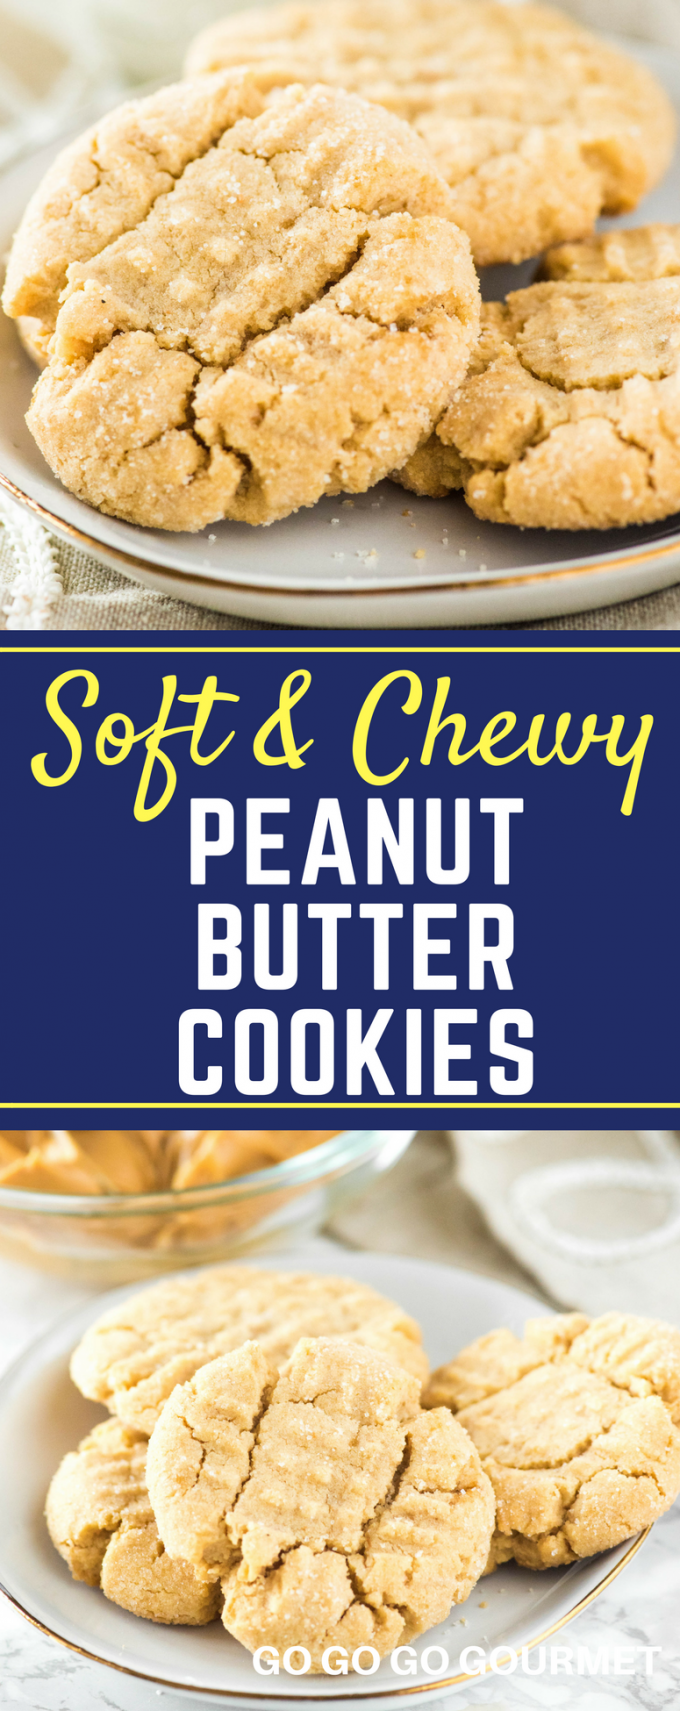 These soft peanut butter cookies are incredibly easy to make. Simple ingredients lead to a perfectly chewy homemade cookie! #cookie #peanutbutter via @gogogogourmet